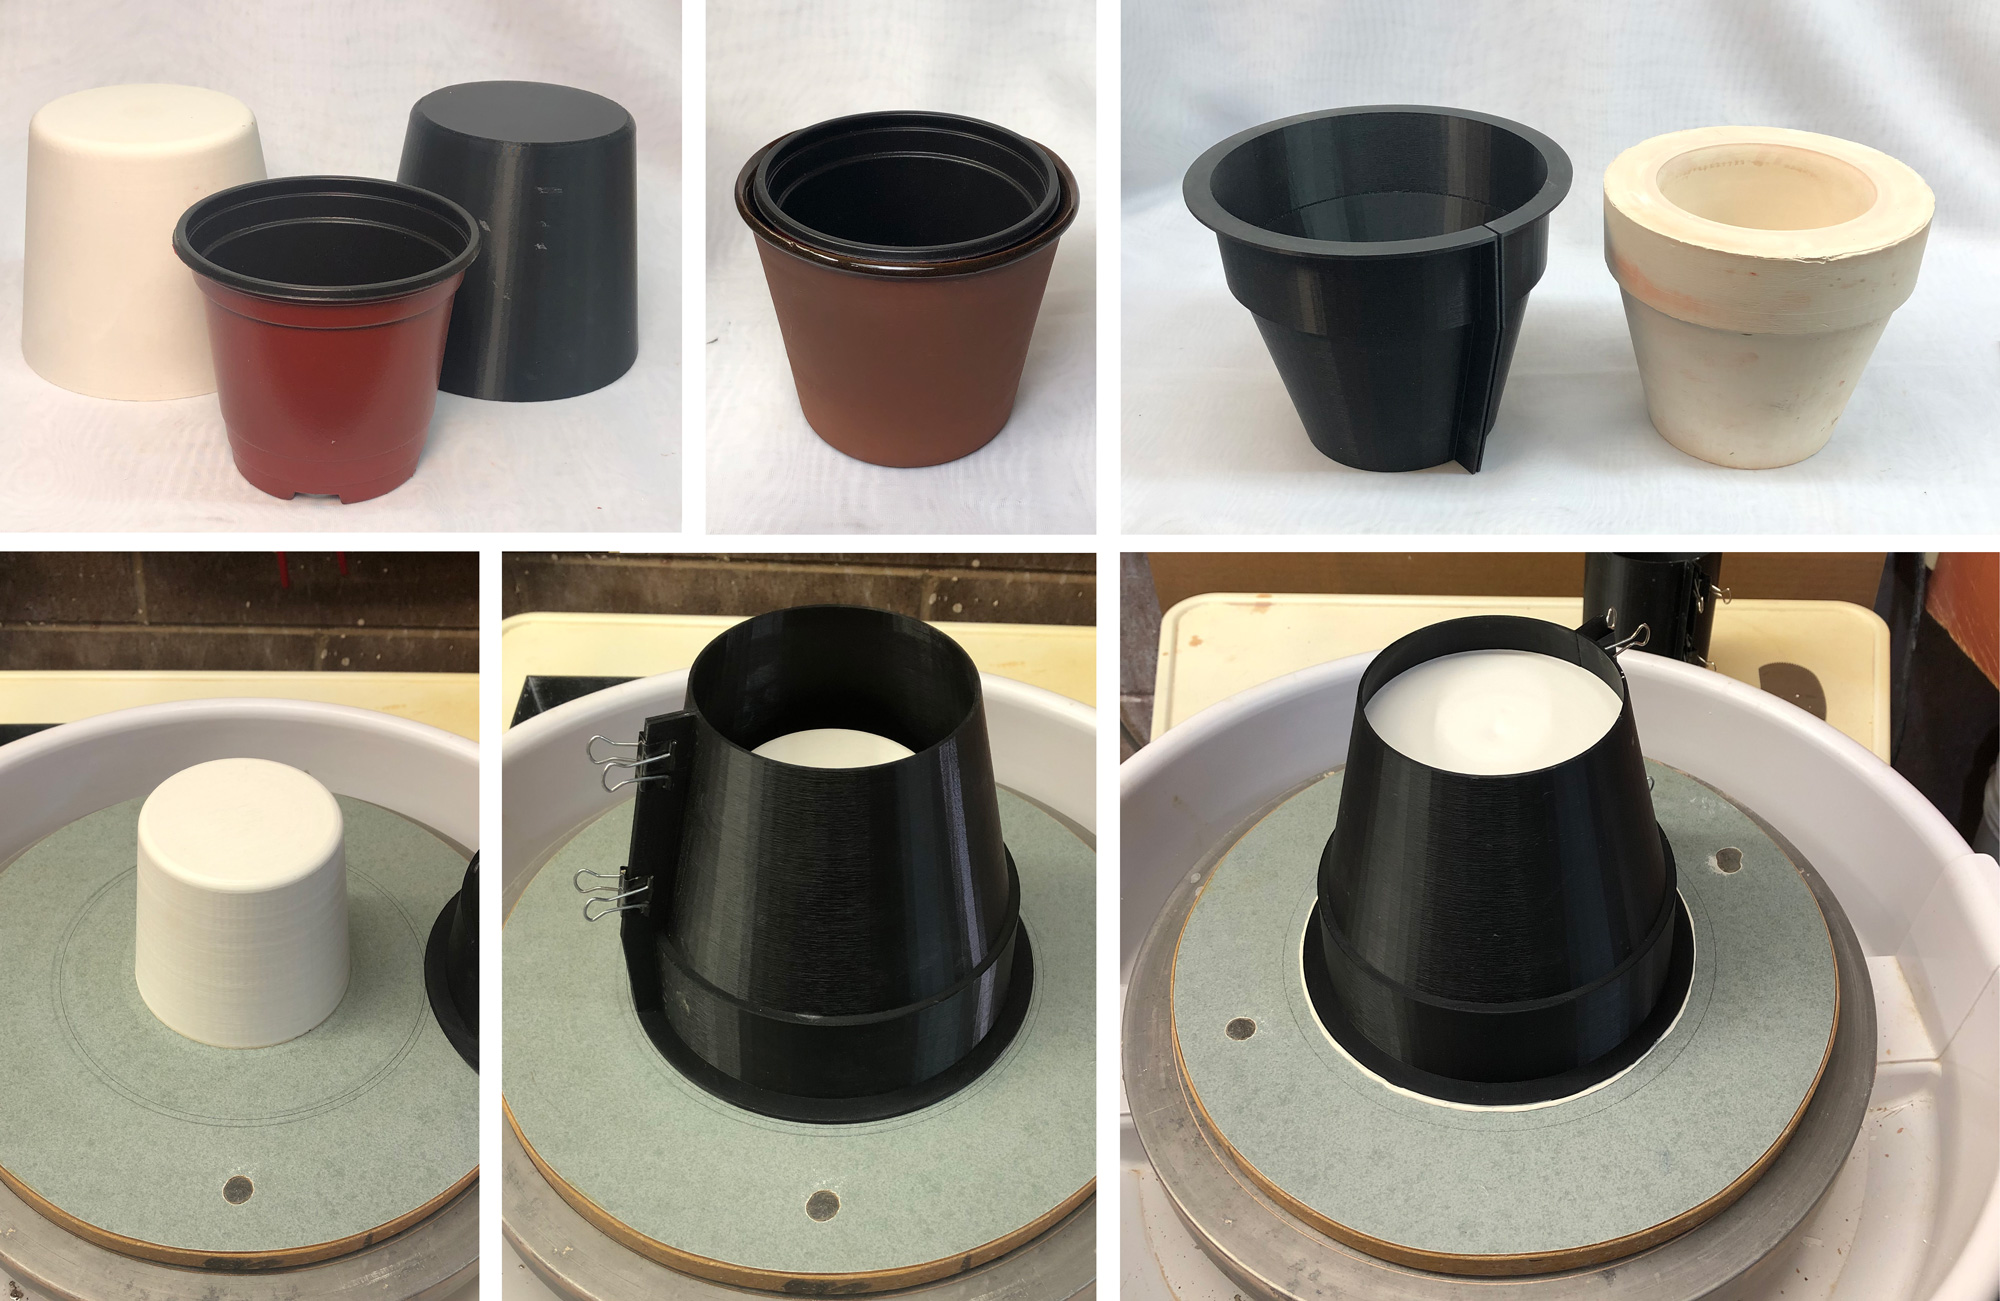 Easier way to make a plant pot mold via 3D printing